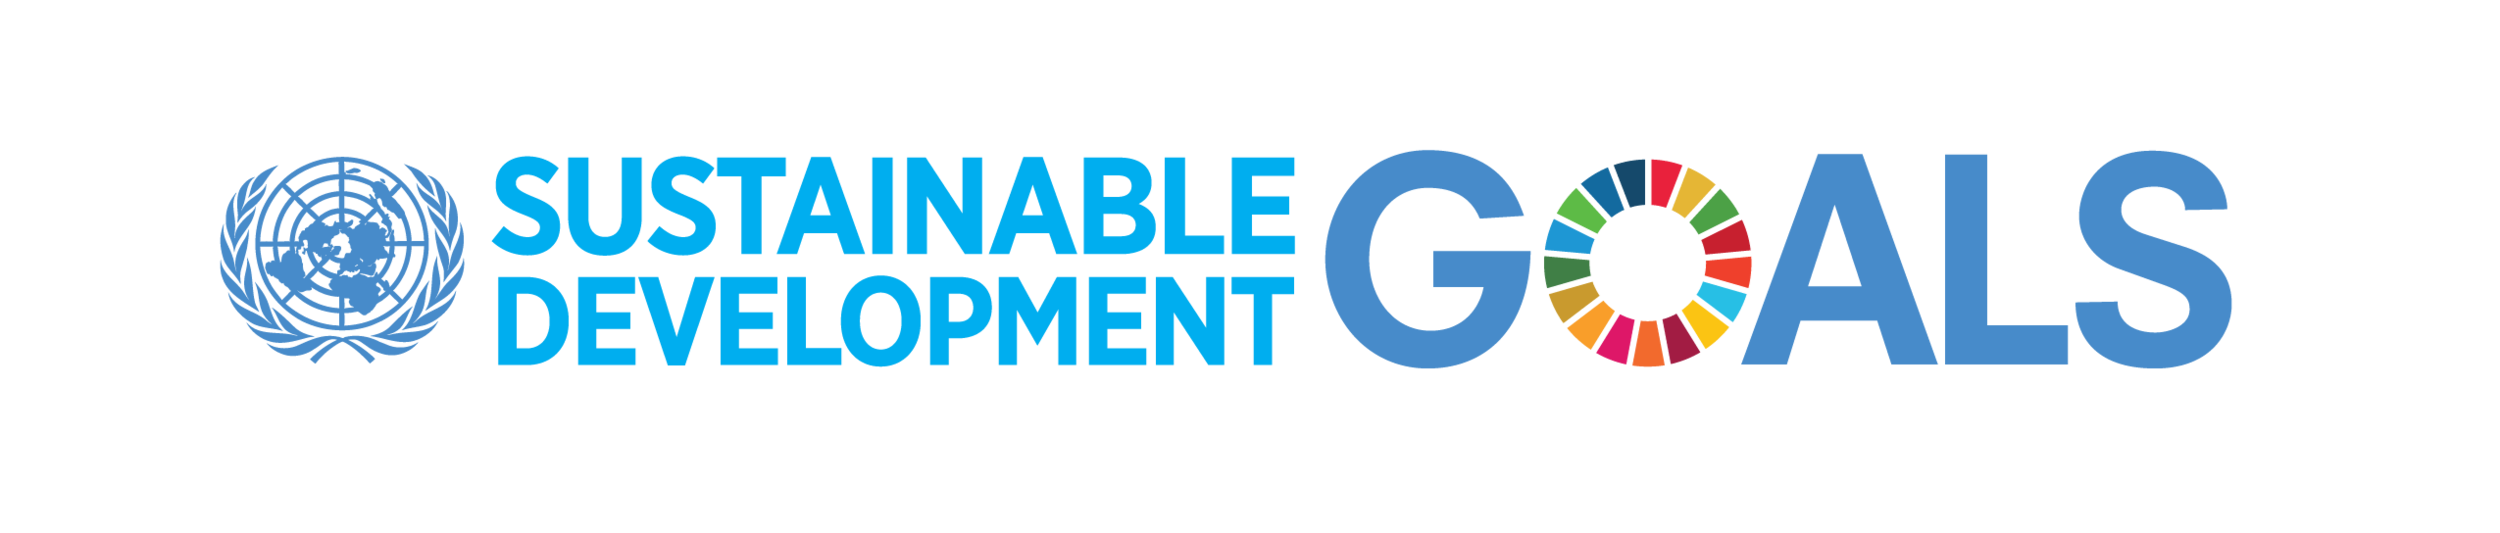 SDG_long rectangular logo.jpg